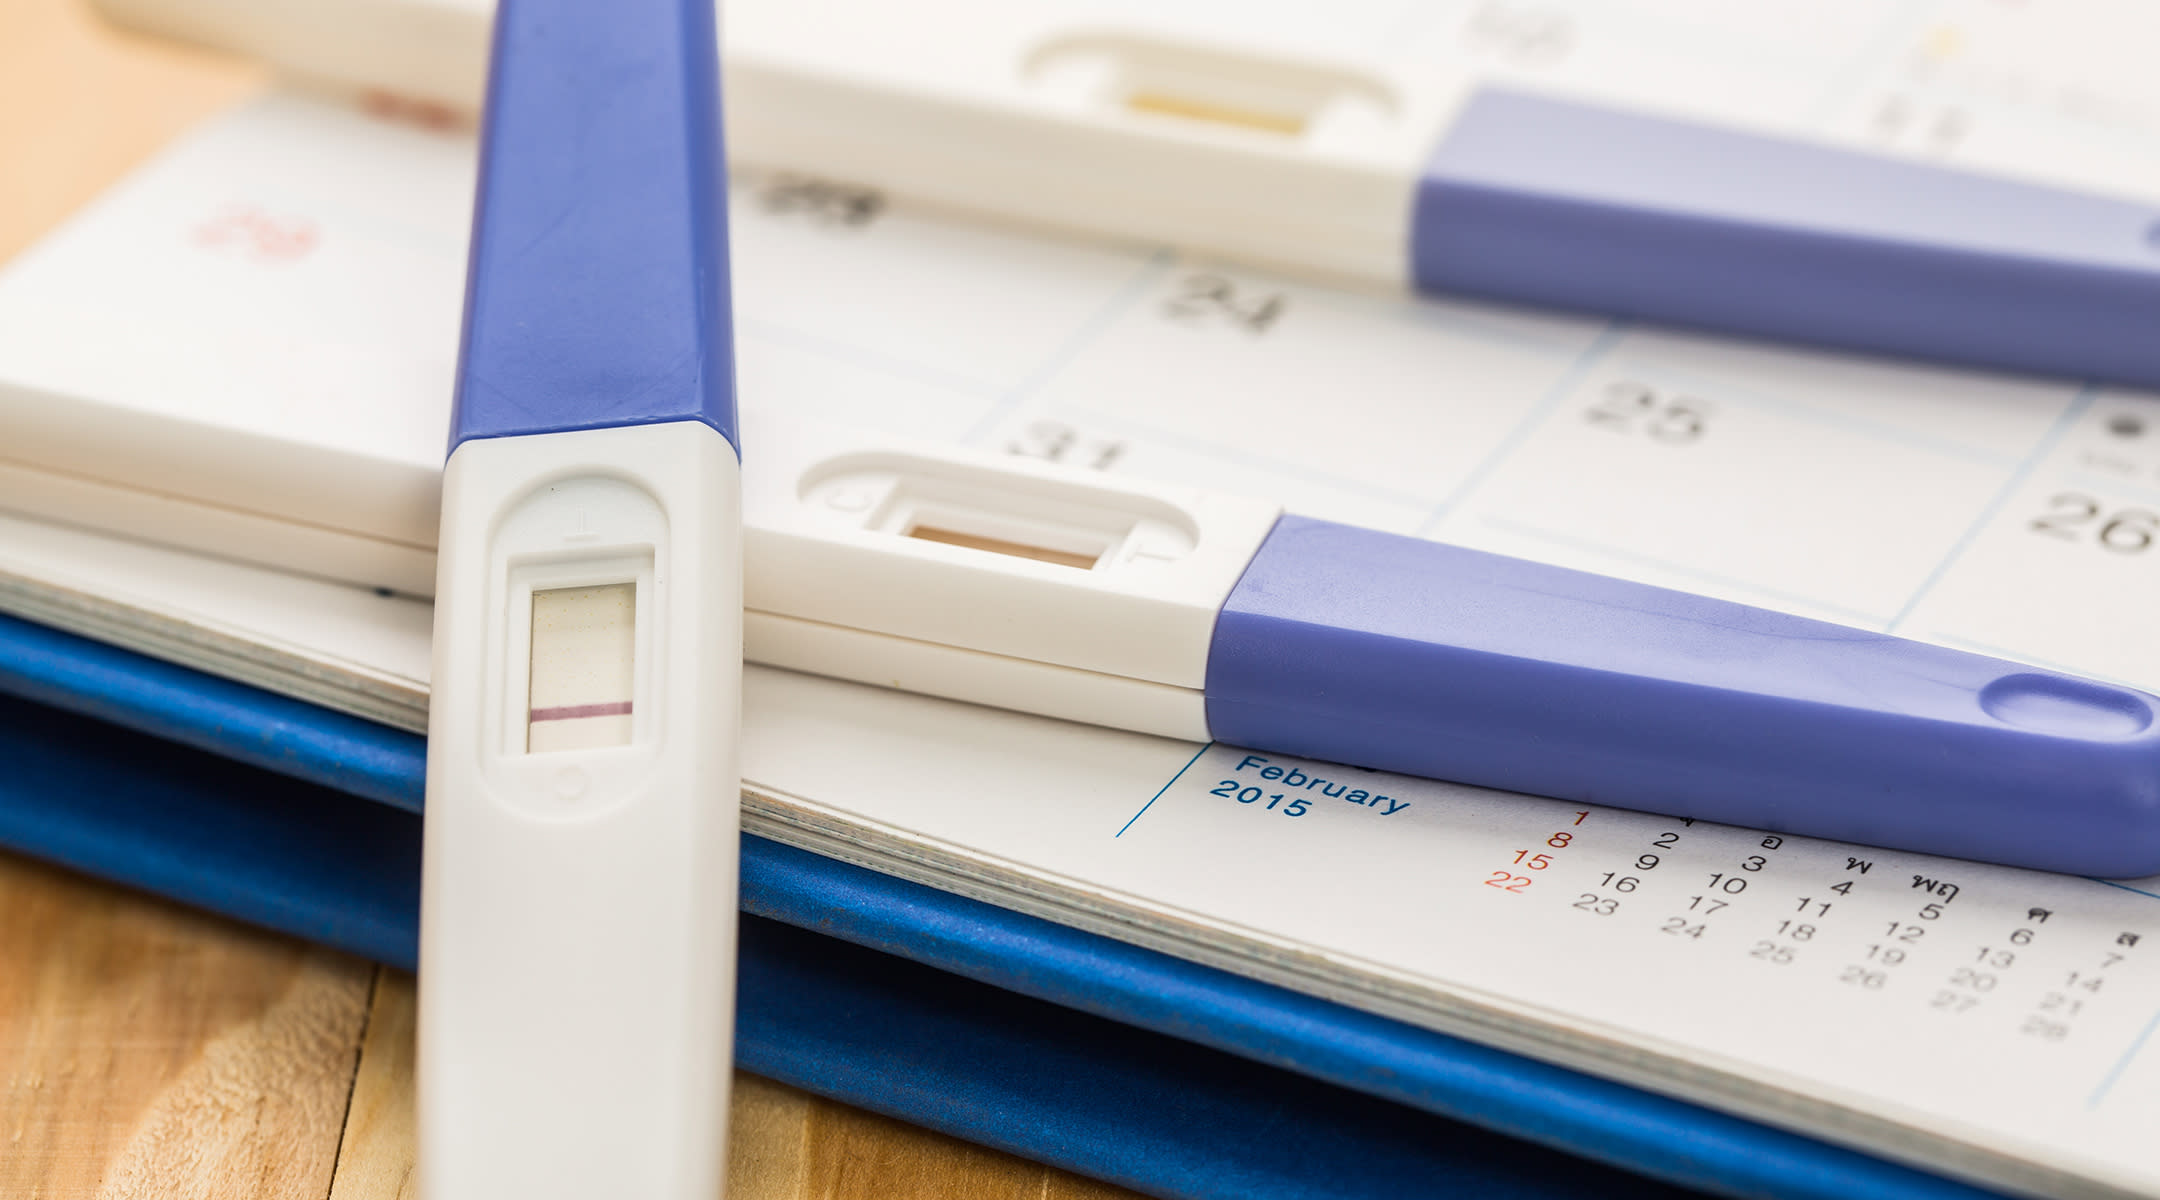 What is the best time to take a pregnancy test after a missed period?